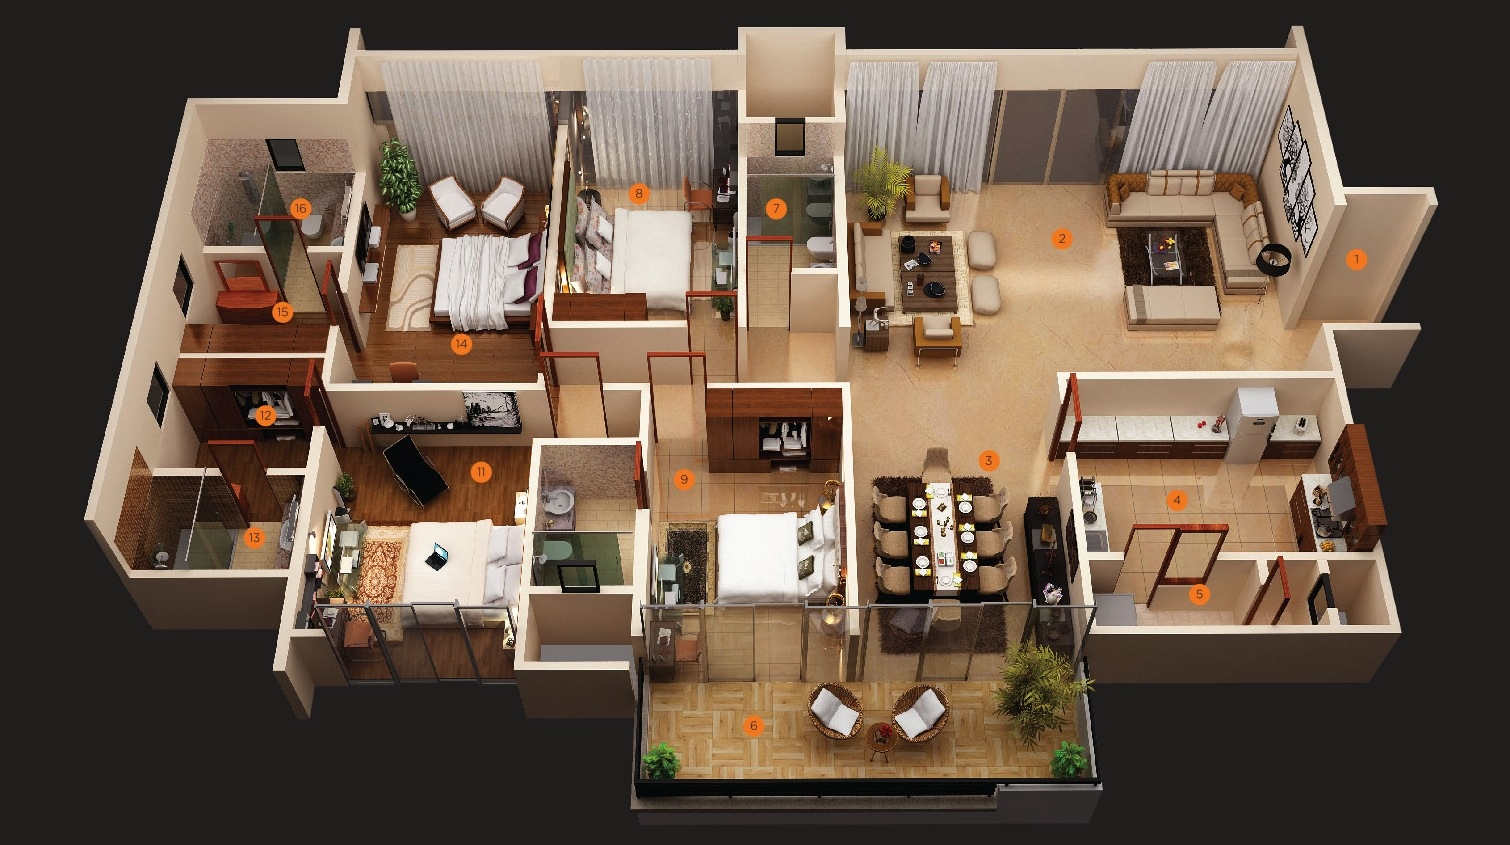 Modern 4 bedroom house plans decor units for 4 bedroom home design